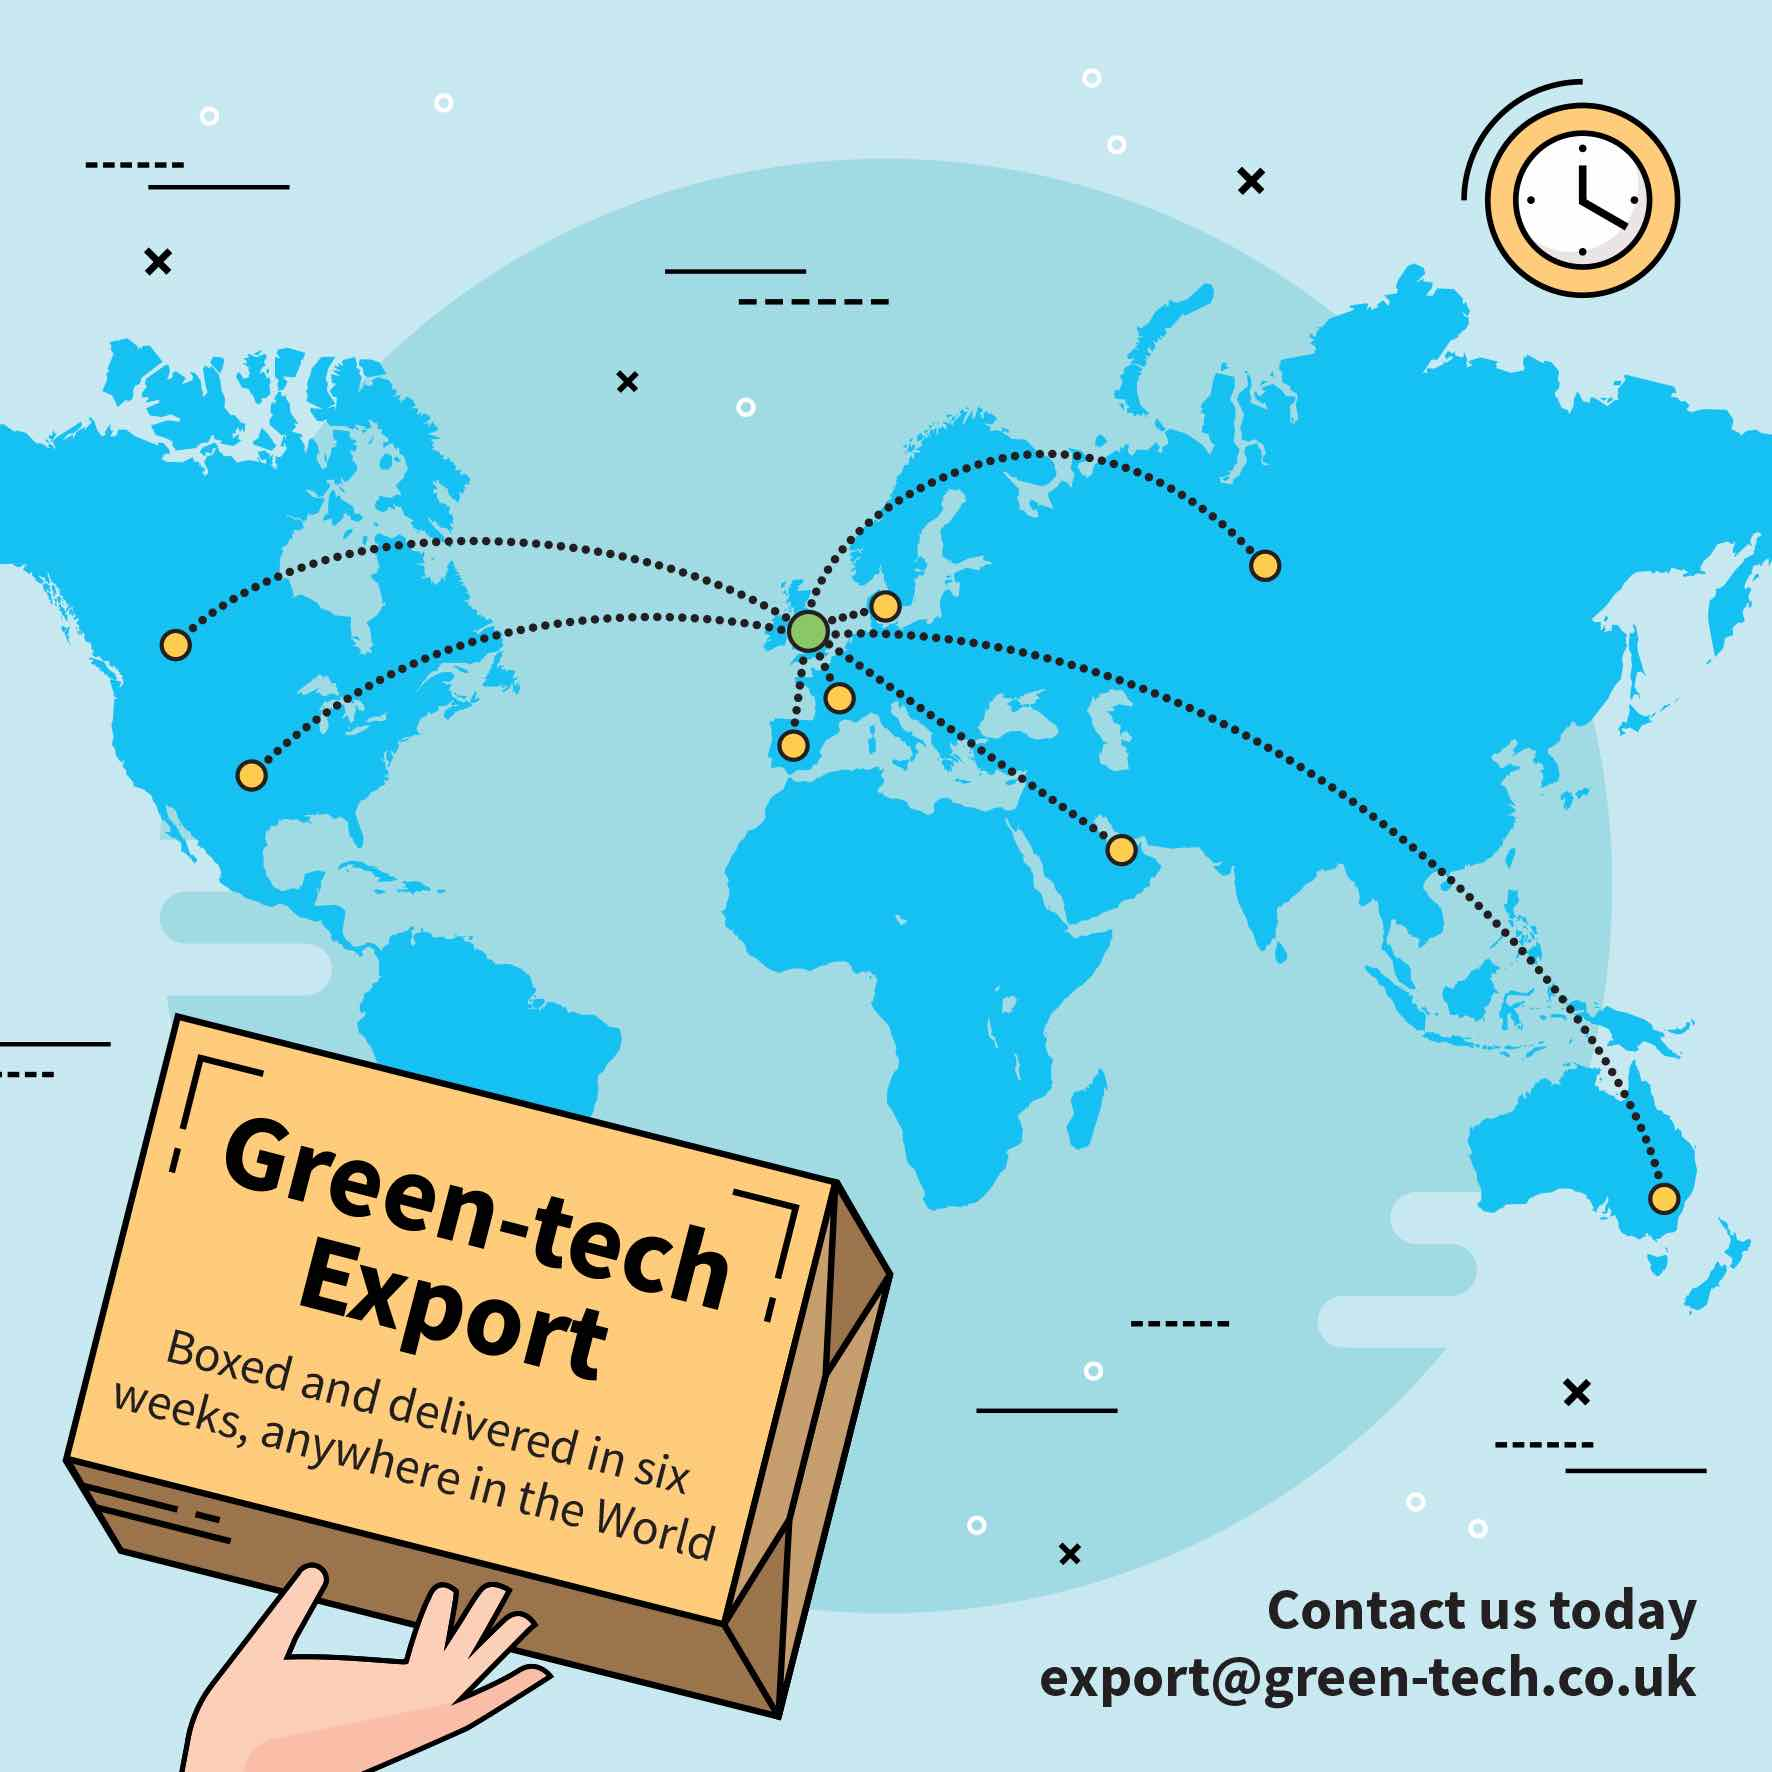 Green-tech Export Around The World